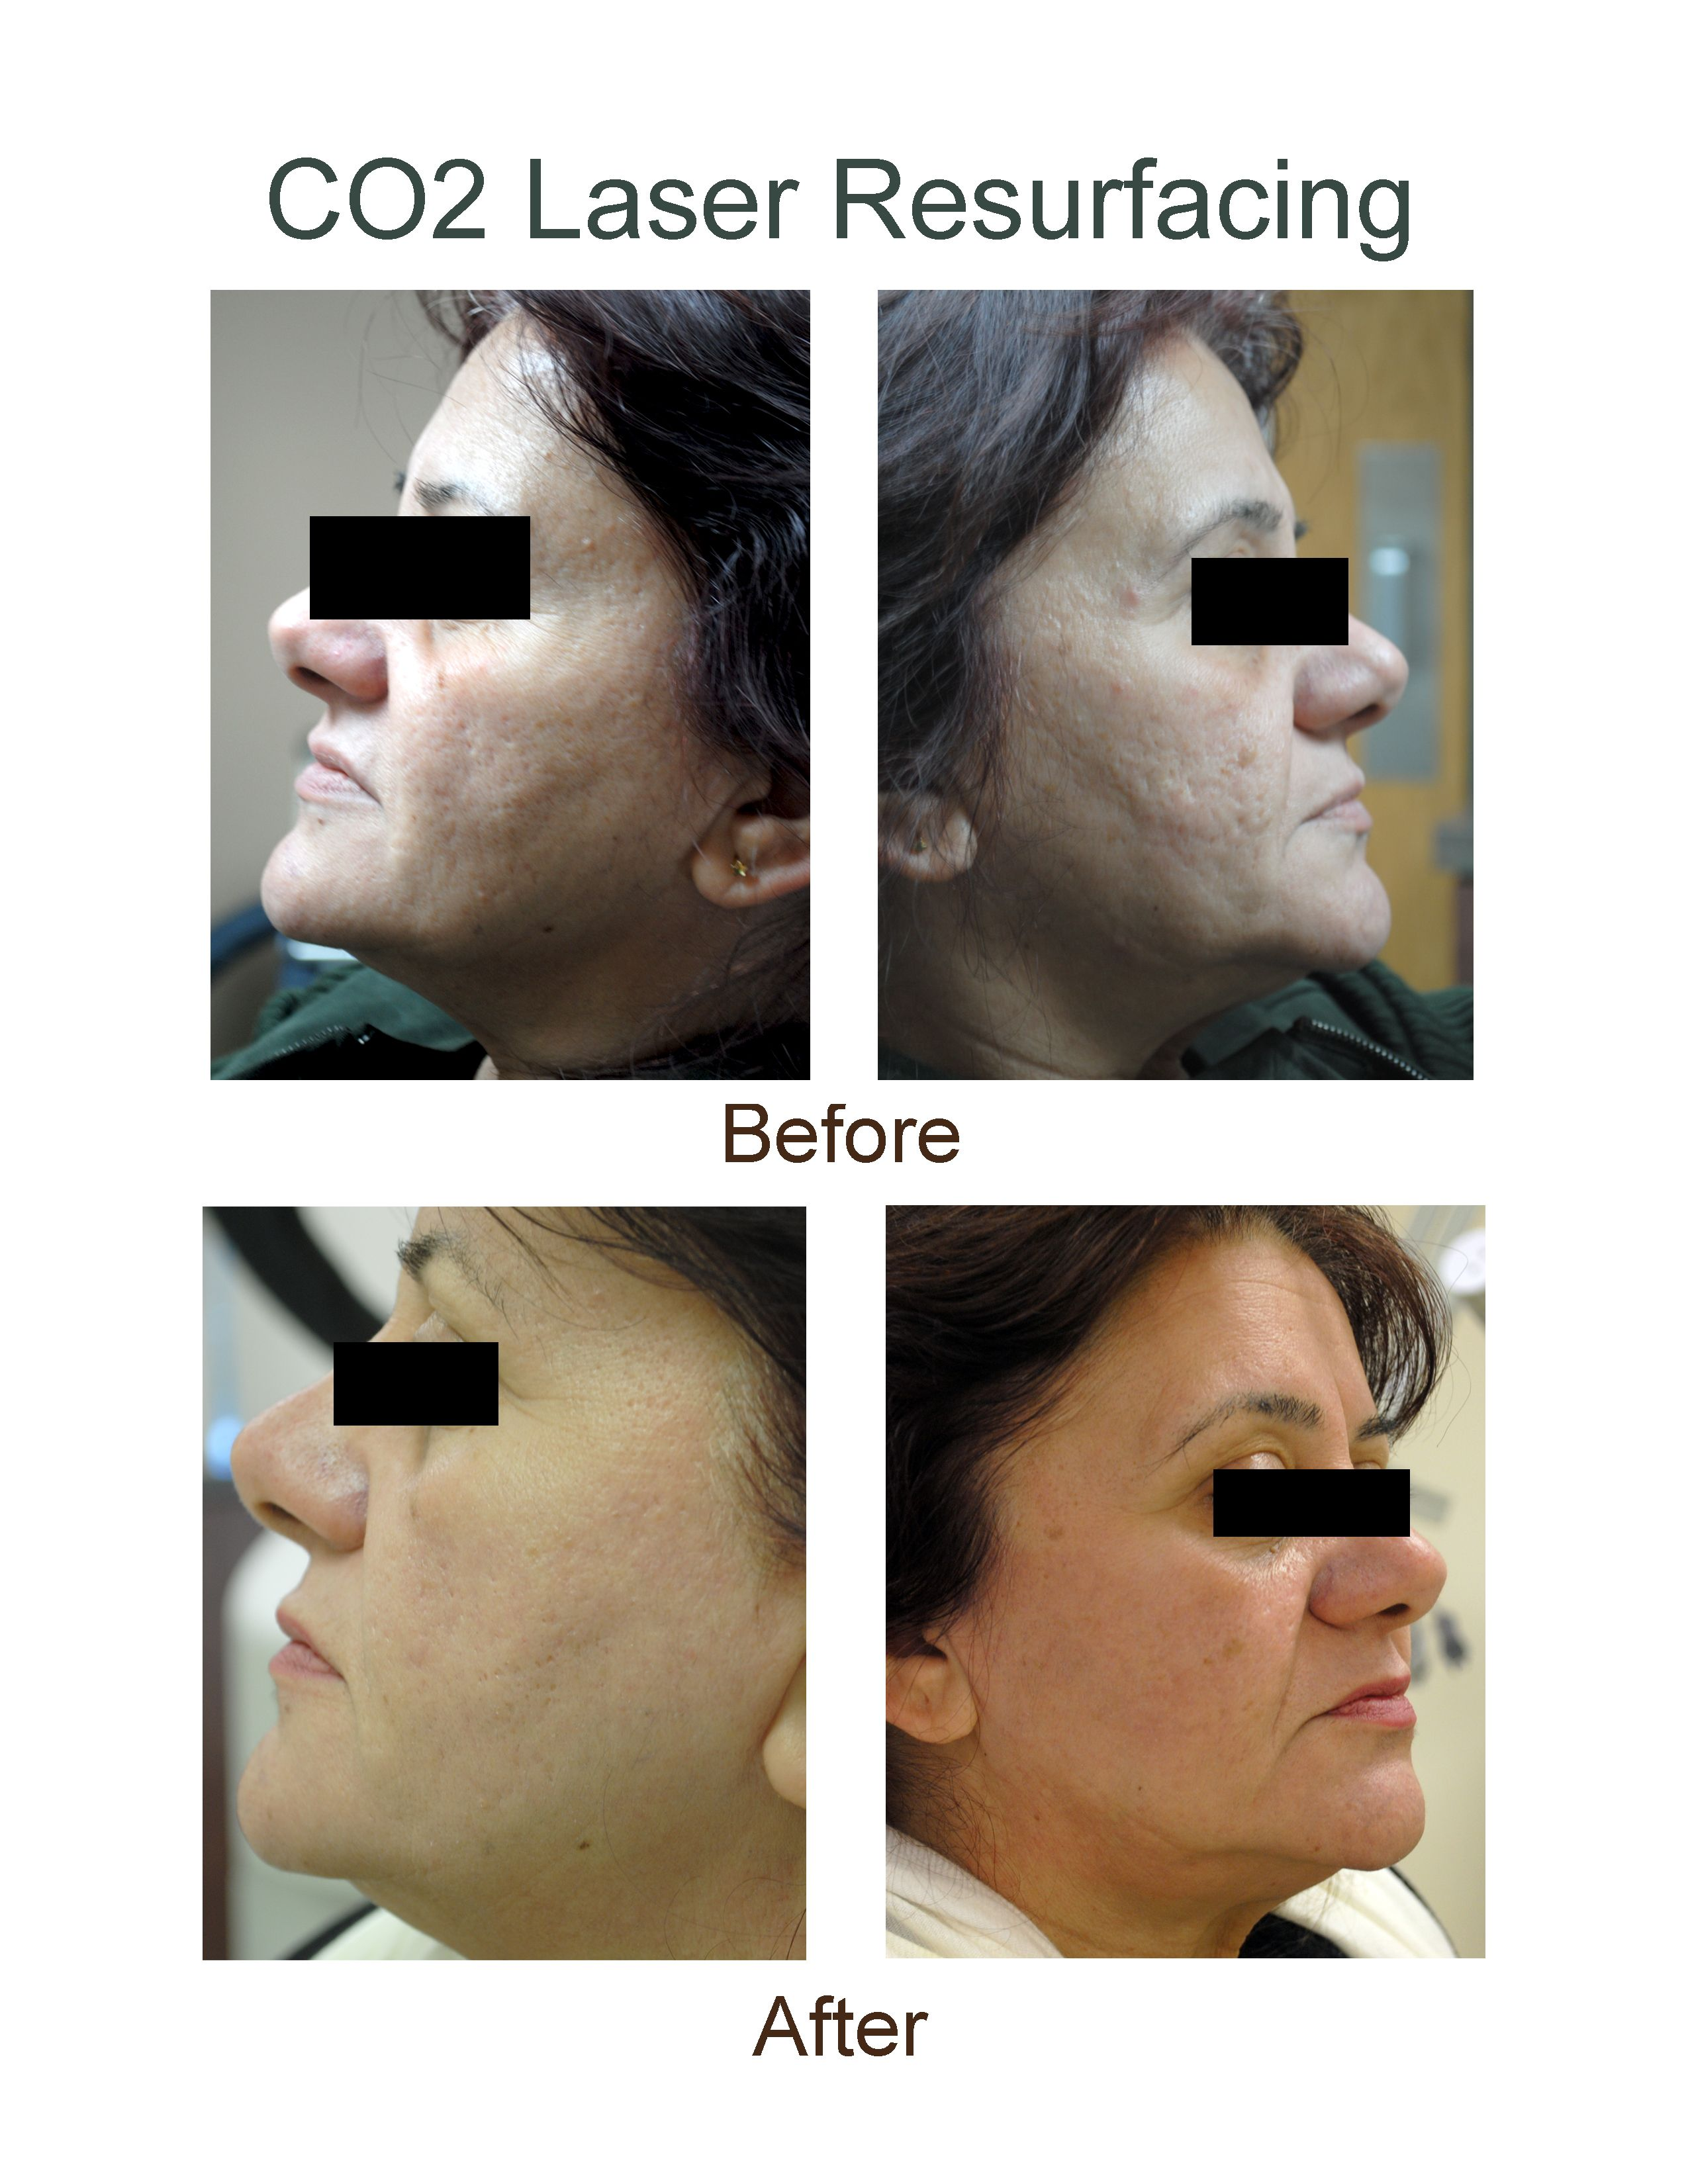 Before And After Co2 Laser Resurfacing At Ah Laser Aesthetics Co2 Laser Resurfacing Laser Resurfacing Laser Aesthetics